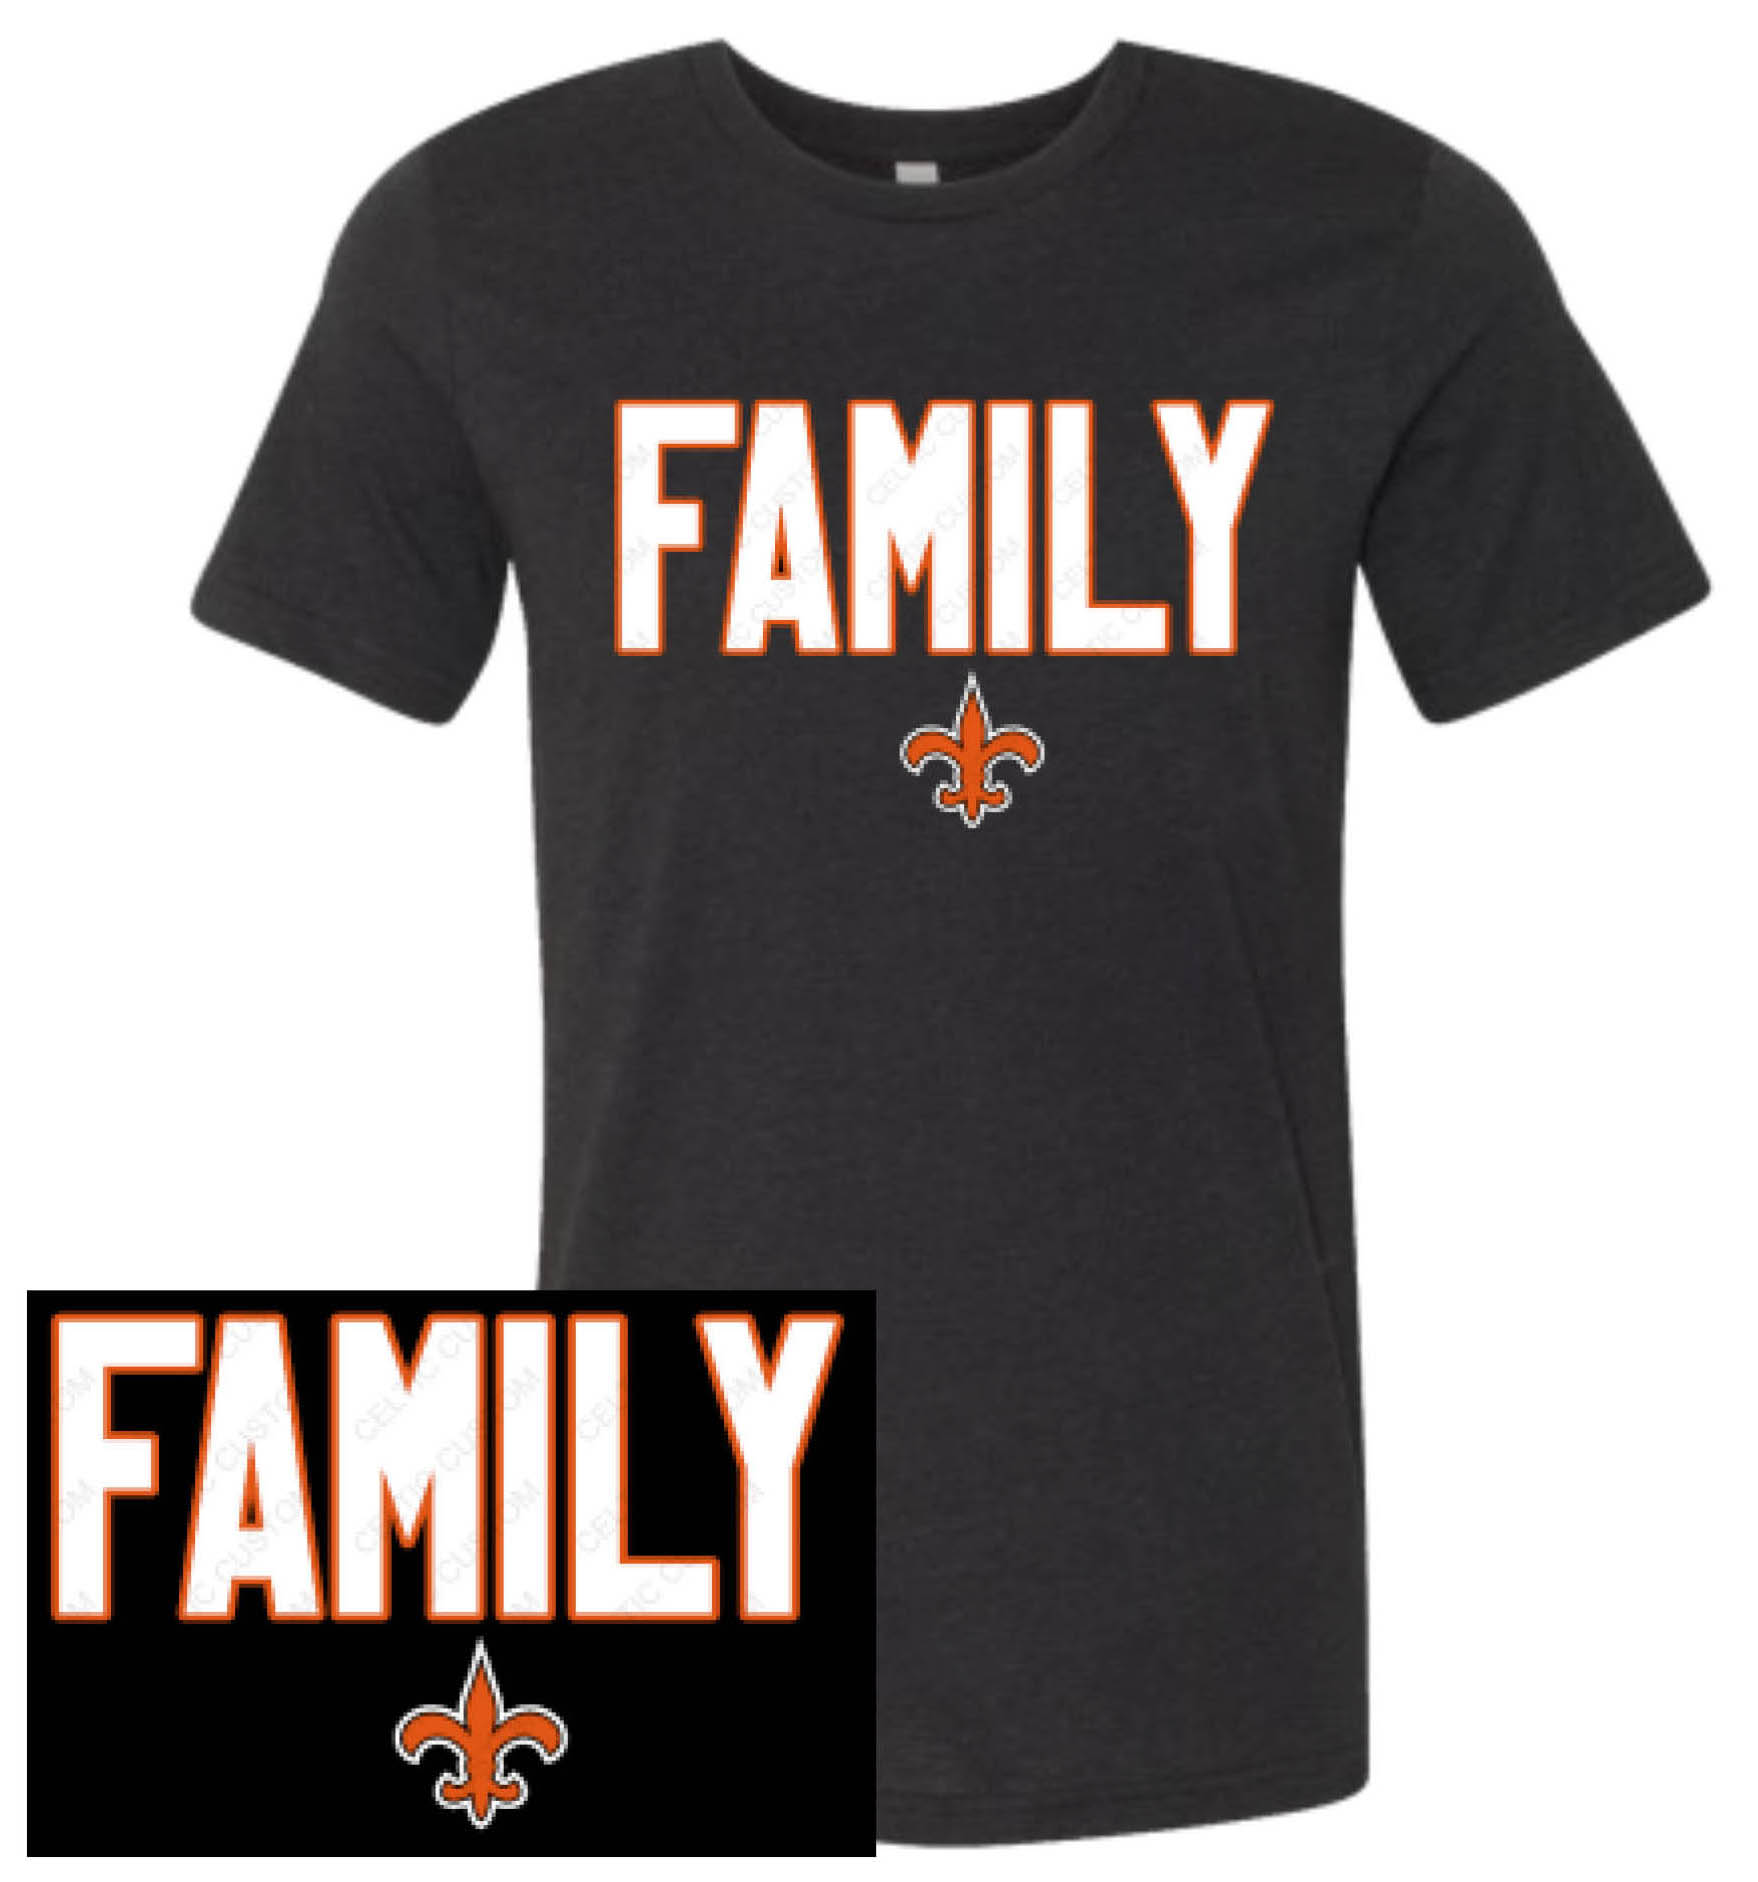 Unisex Short Sleeve Family T-Shirt